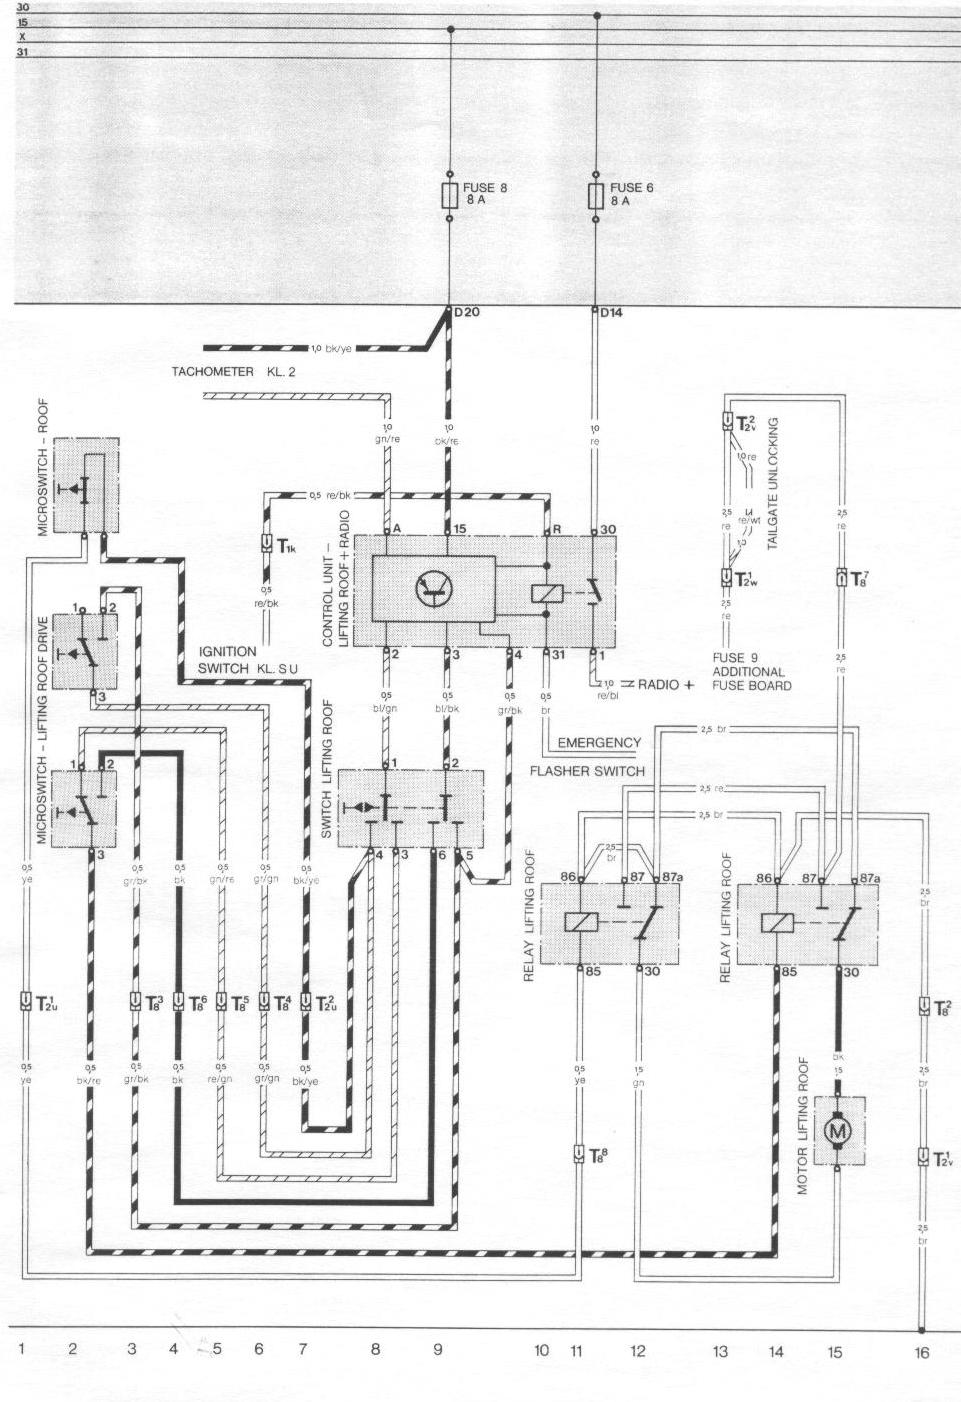 944_84_sunroof pelican parts porsche 924 944 electrical diagrams 1983 porsche 944 fuse box diagram at mr168.co